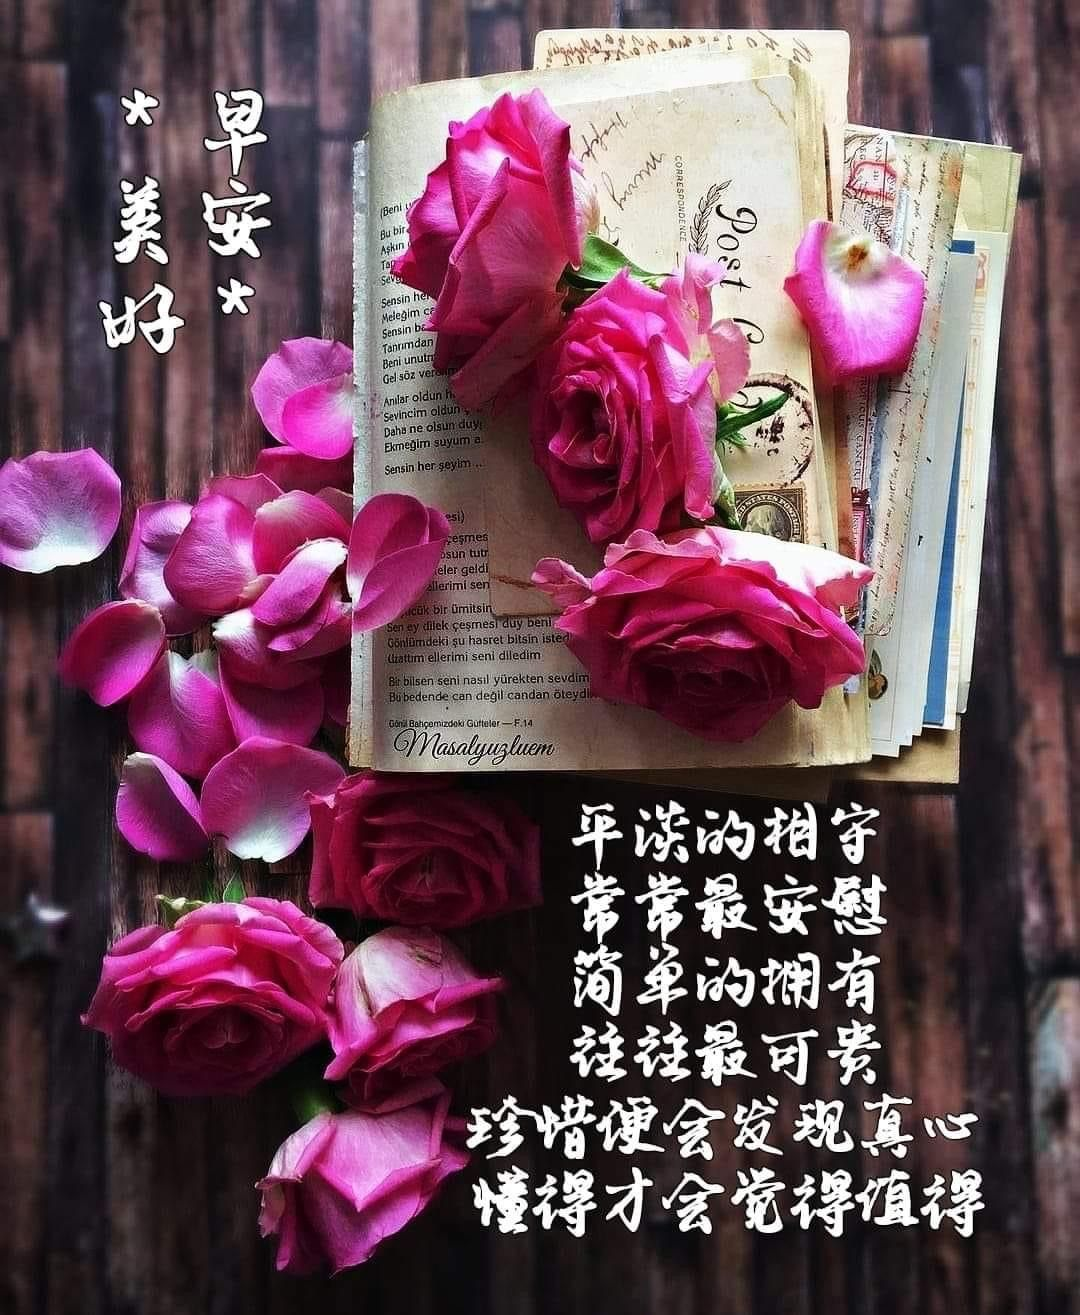 Pin By Gp On 问安 问候语in 2021 Morning Wish Blessed Good Morning